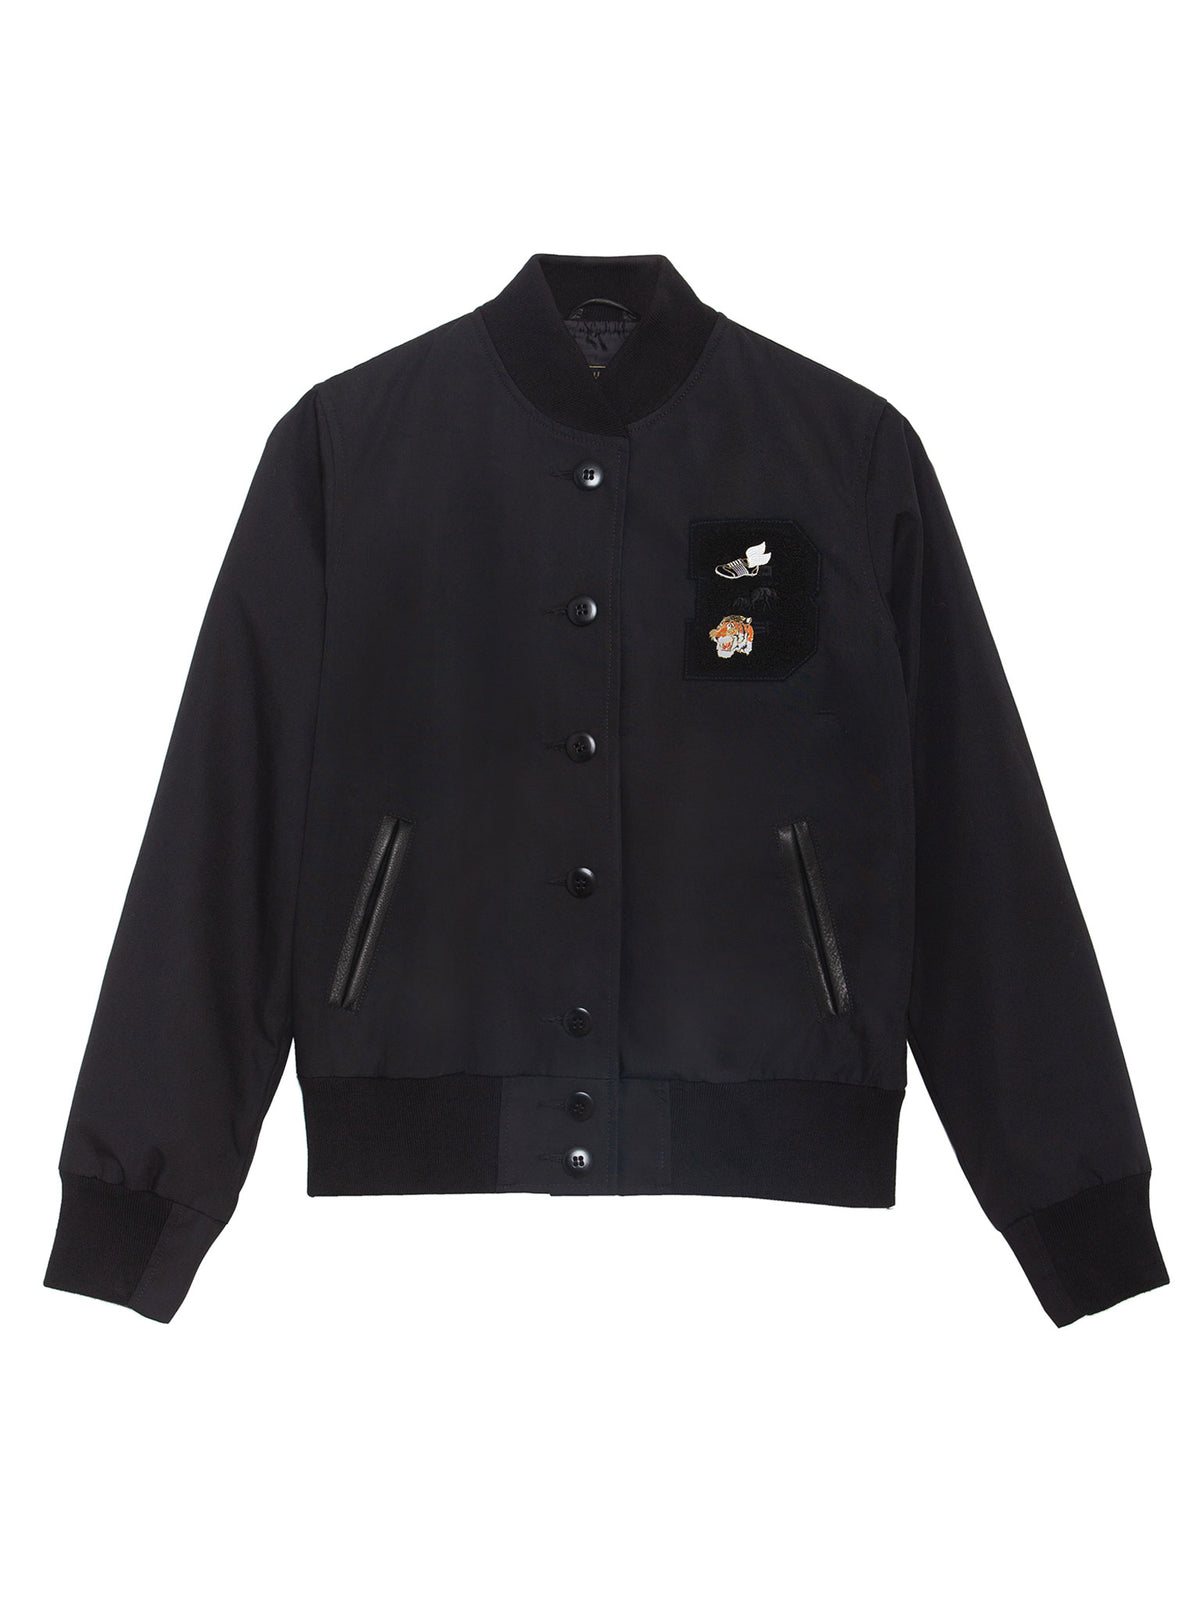 "BKc ""Triple Black"" Cotton Varsity (WOMEN)"